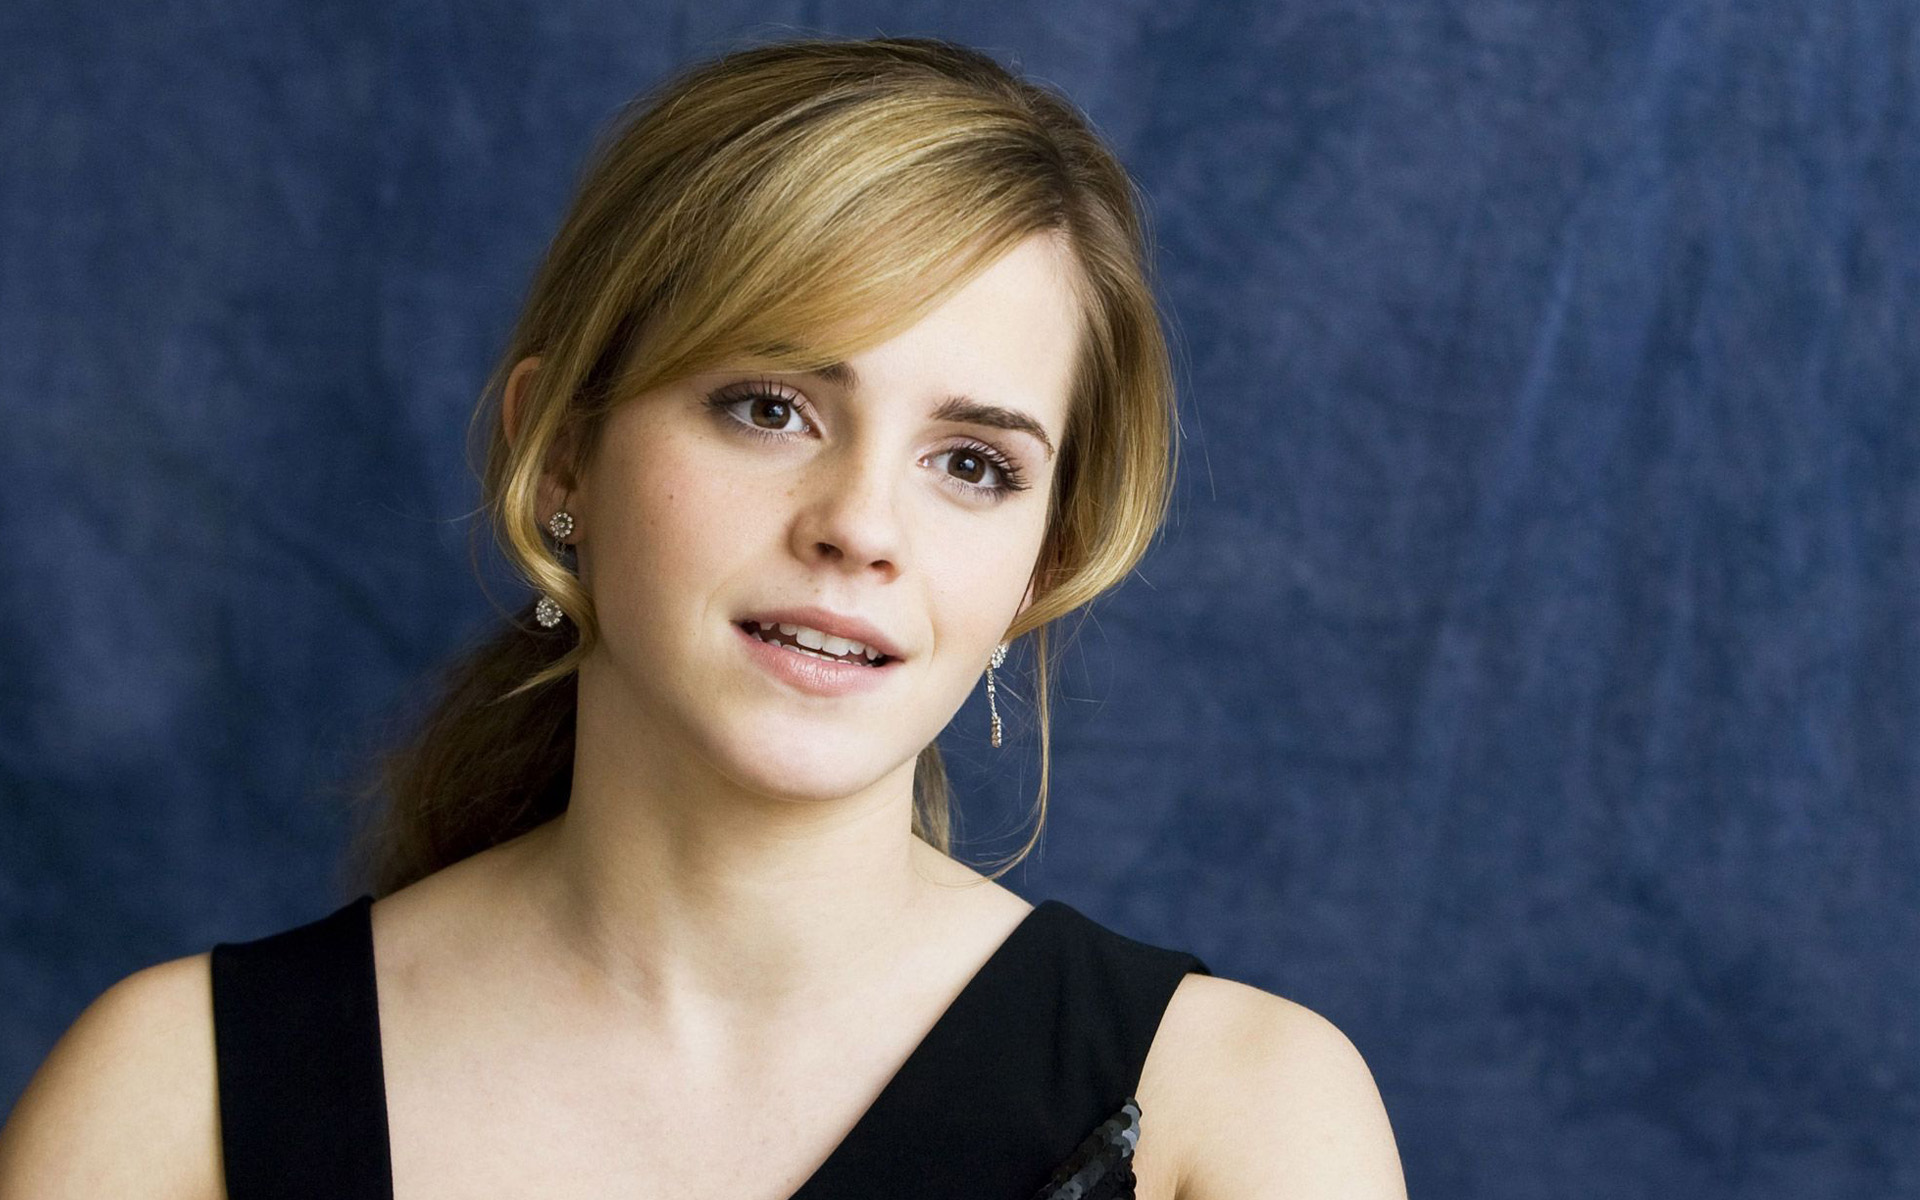 emma watson full hd wallpaper and background image | 1920x1200 | id